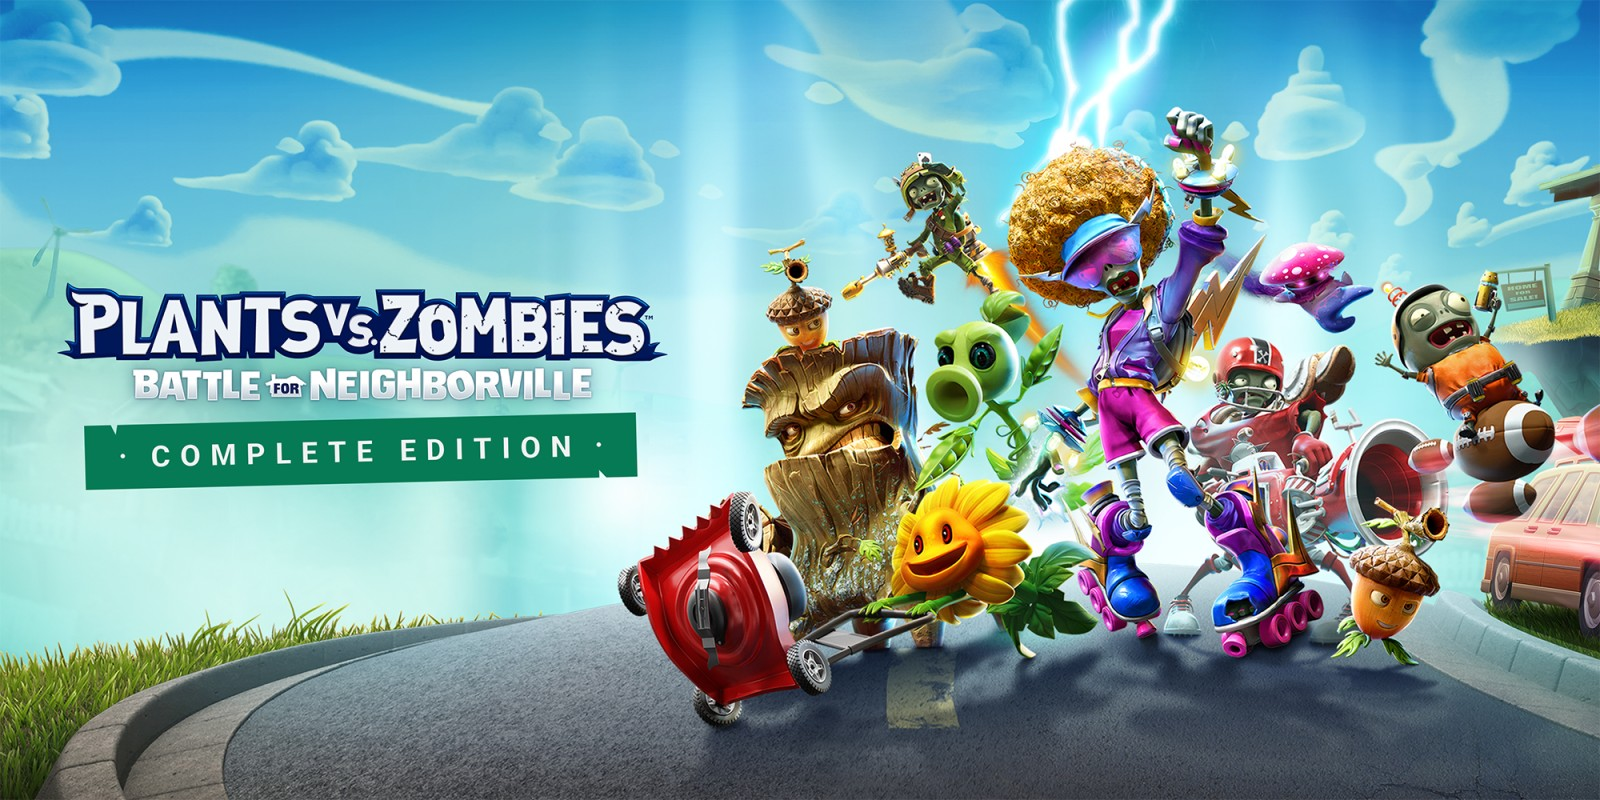 Plants vs. Zombies™: De strijd om Neighborville Complete Edition